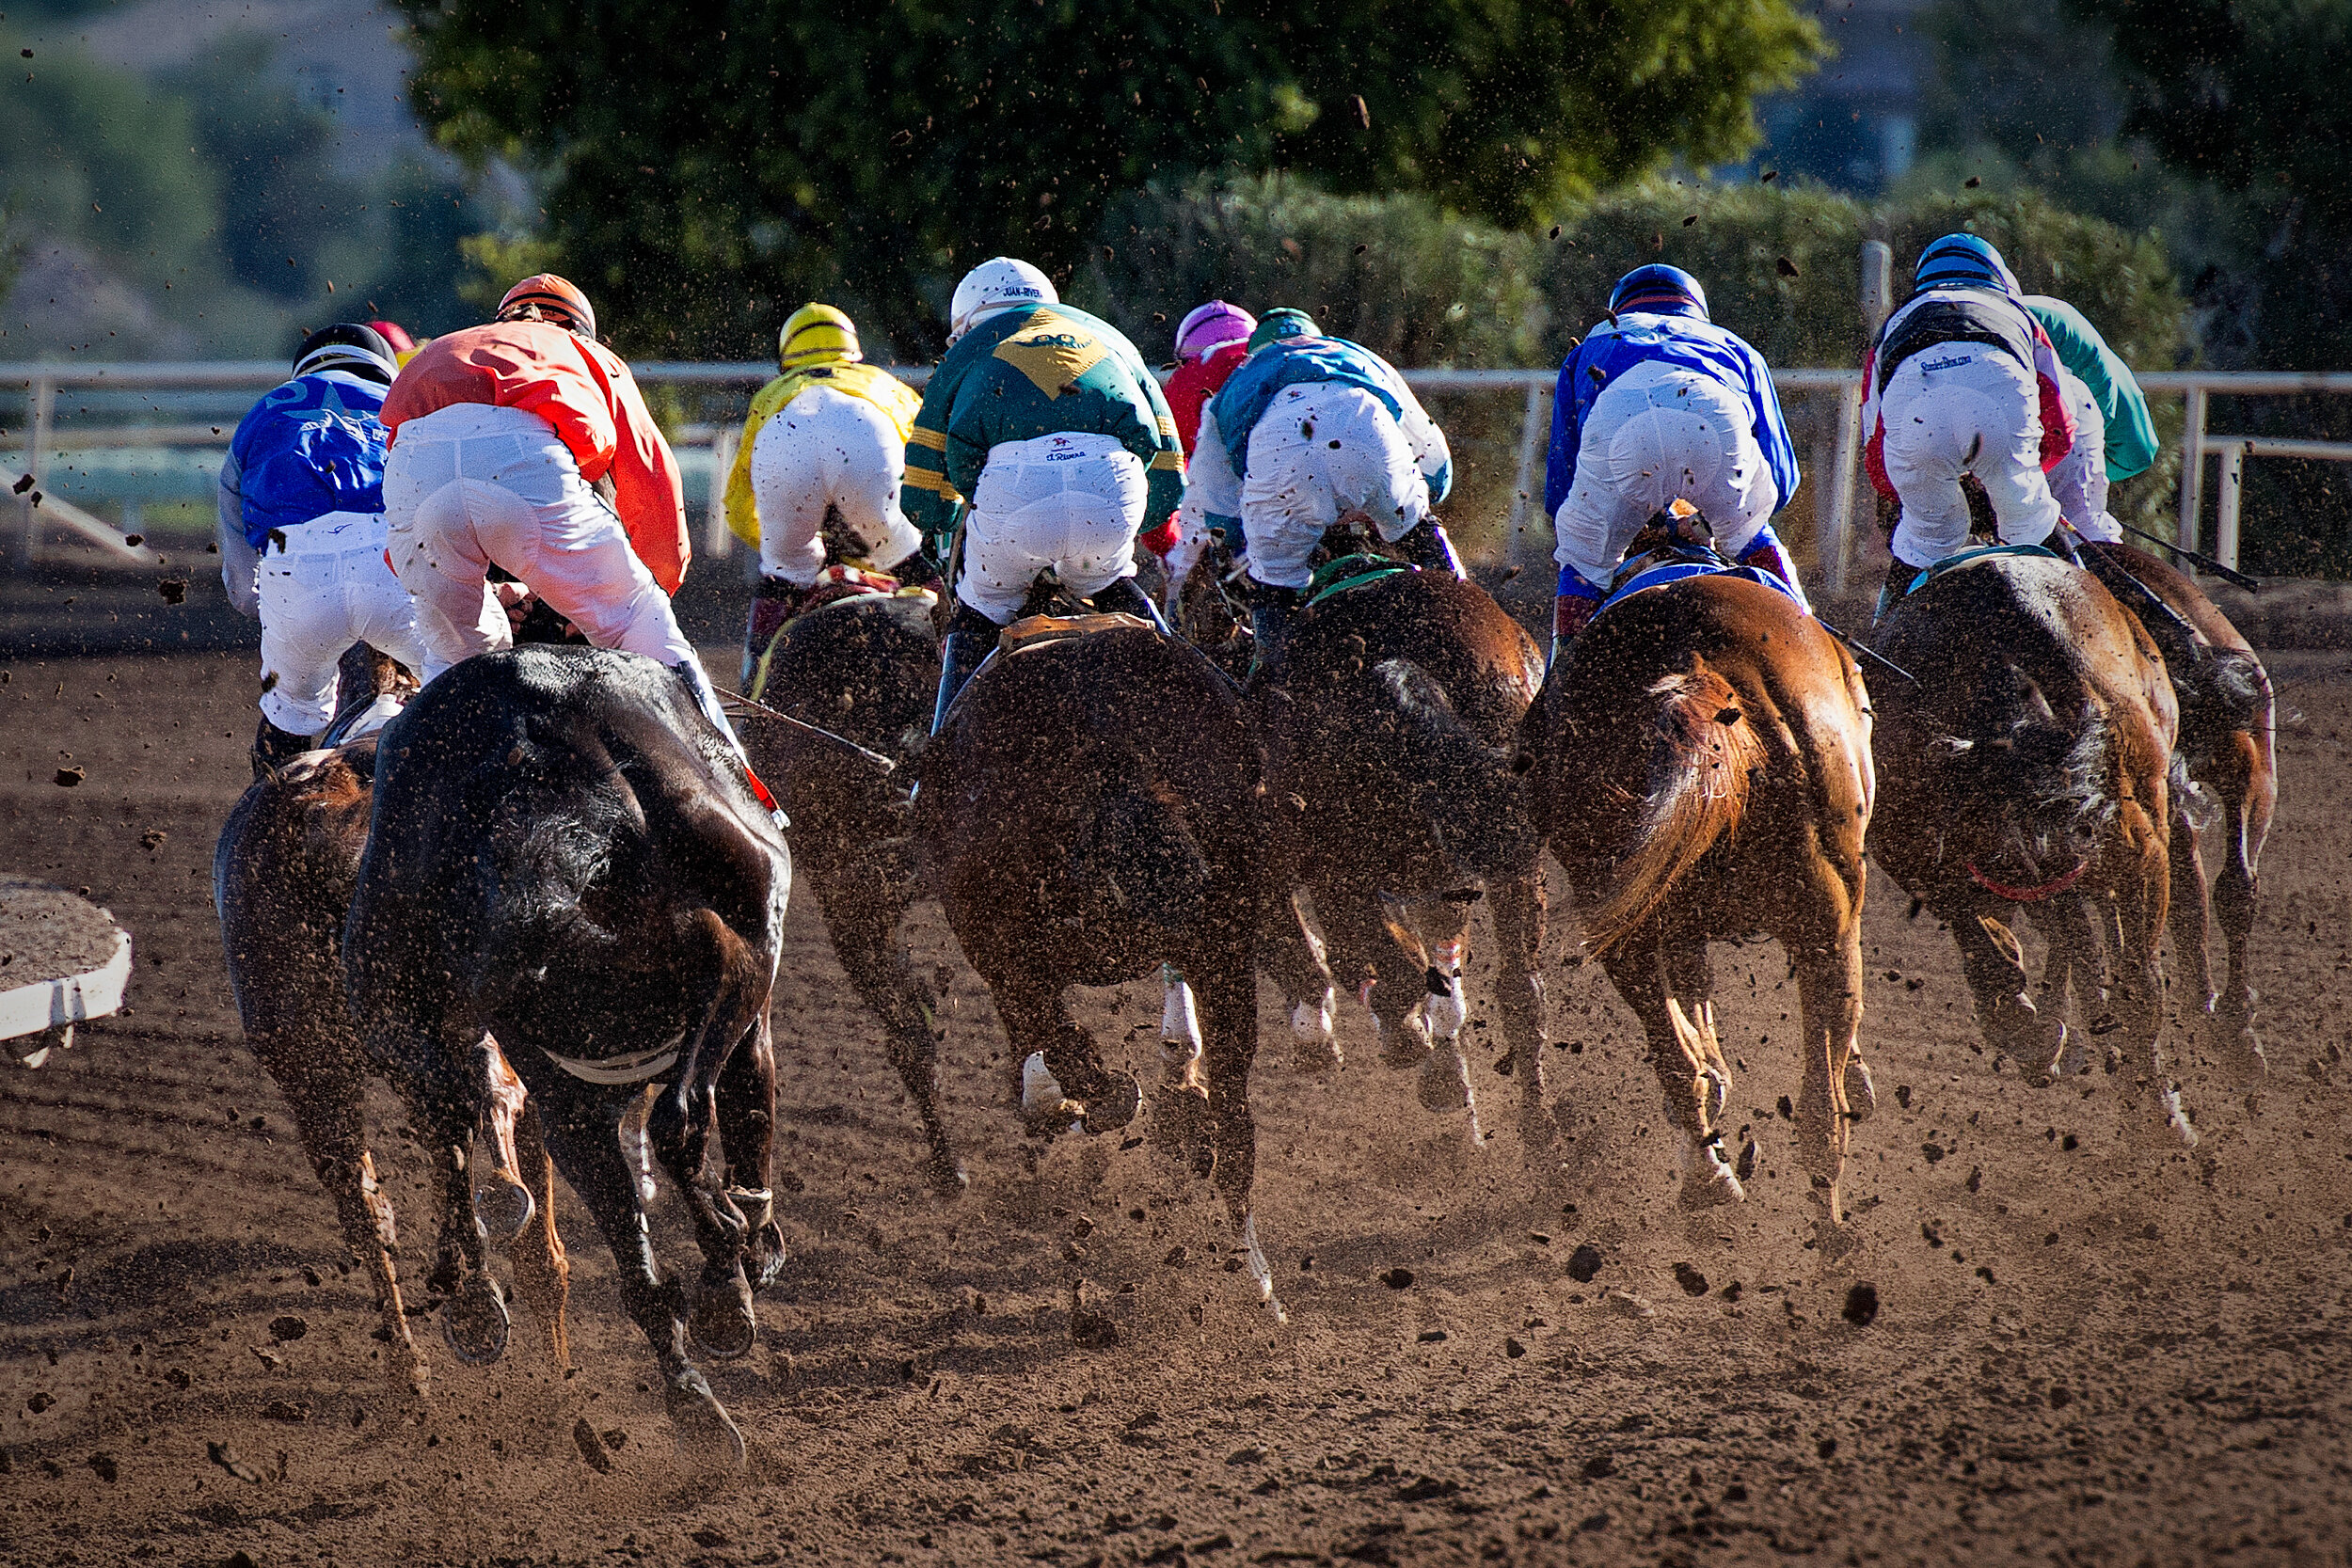 Horse betting online texas free ways to earn bitcoins